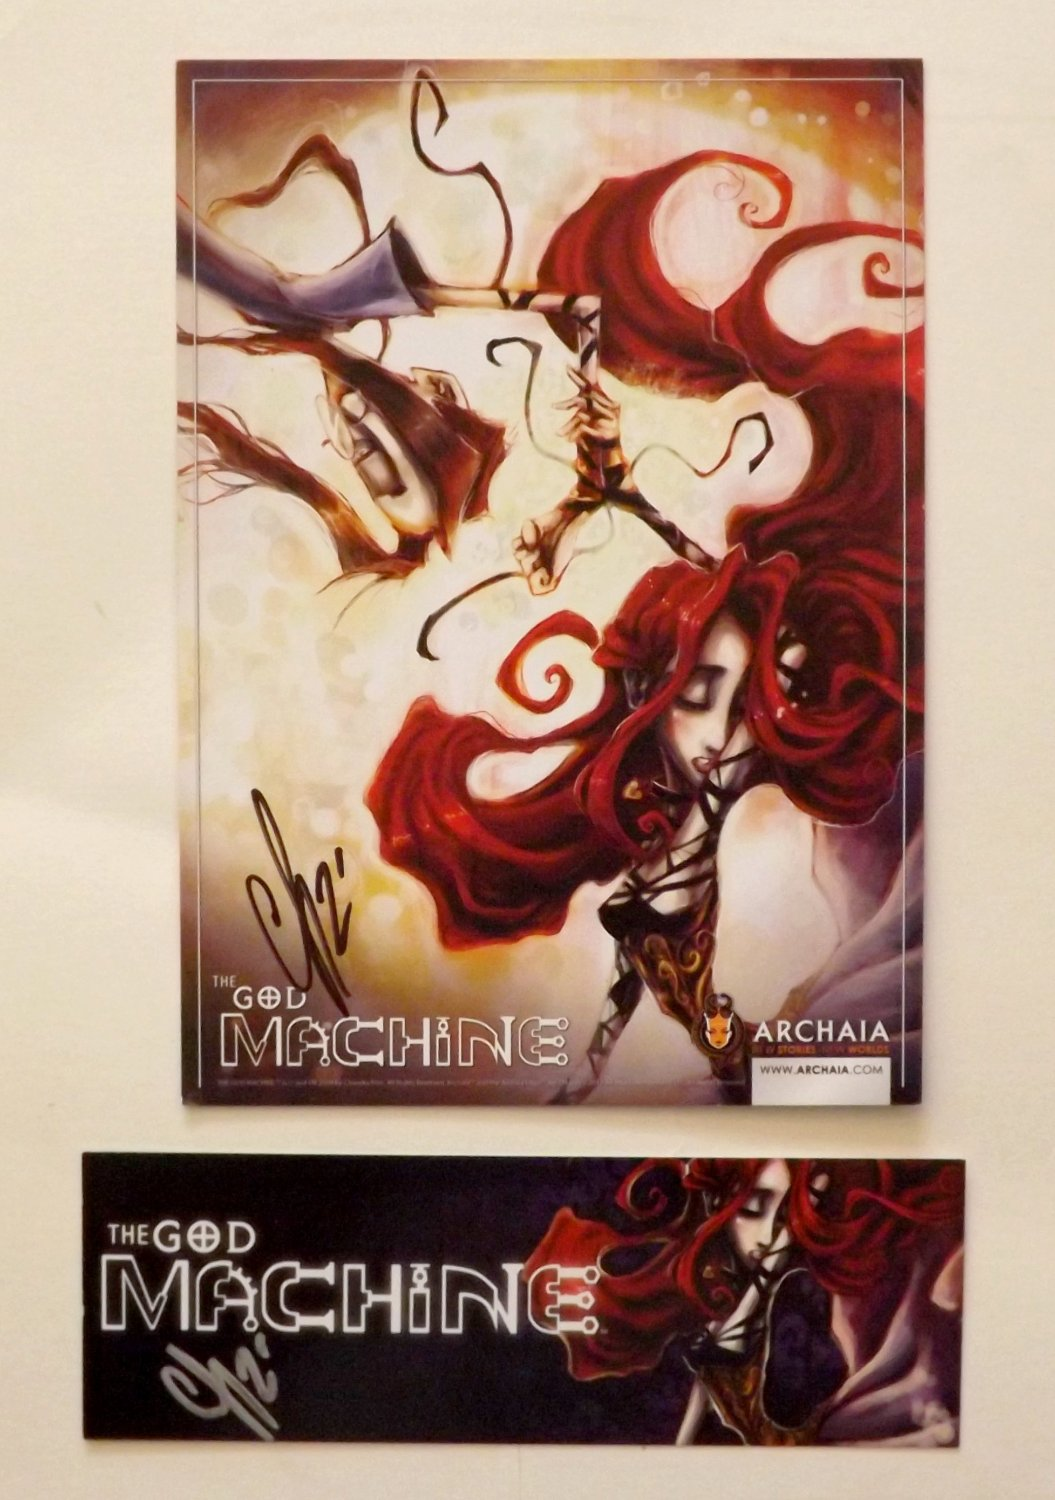 THE GOD MACHINE *SIGNED* Chandra Free -Promo Card/Bookmark Set SDCC 2012 Archaia Comics